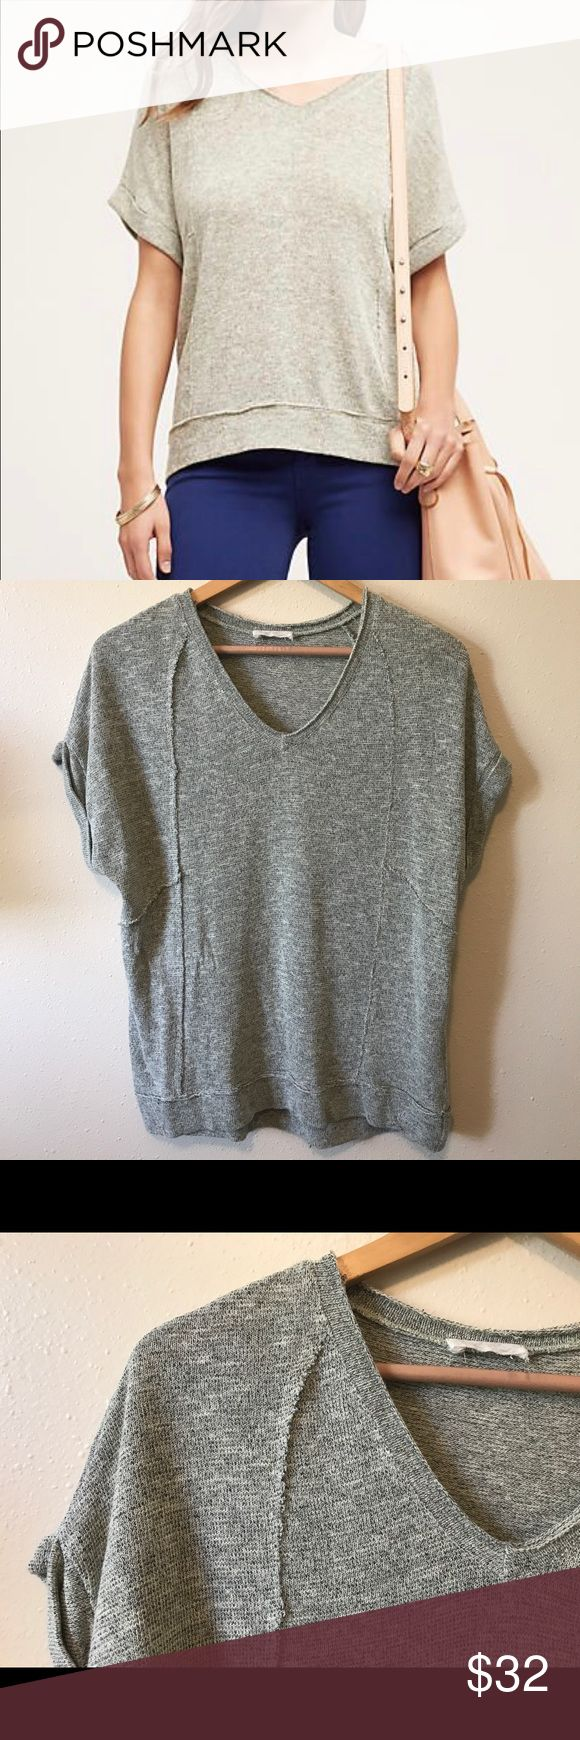 Anthropologie On the Road Sprinter Neutral Tee Size Medium in very very good used condition! Very little signs of wear. In a neutral/beige/gray colorway. Fits true to size. Anthropologie Tops Tees - Short Sleeve